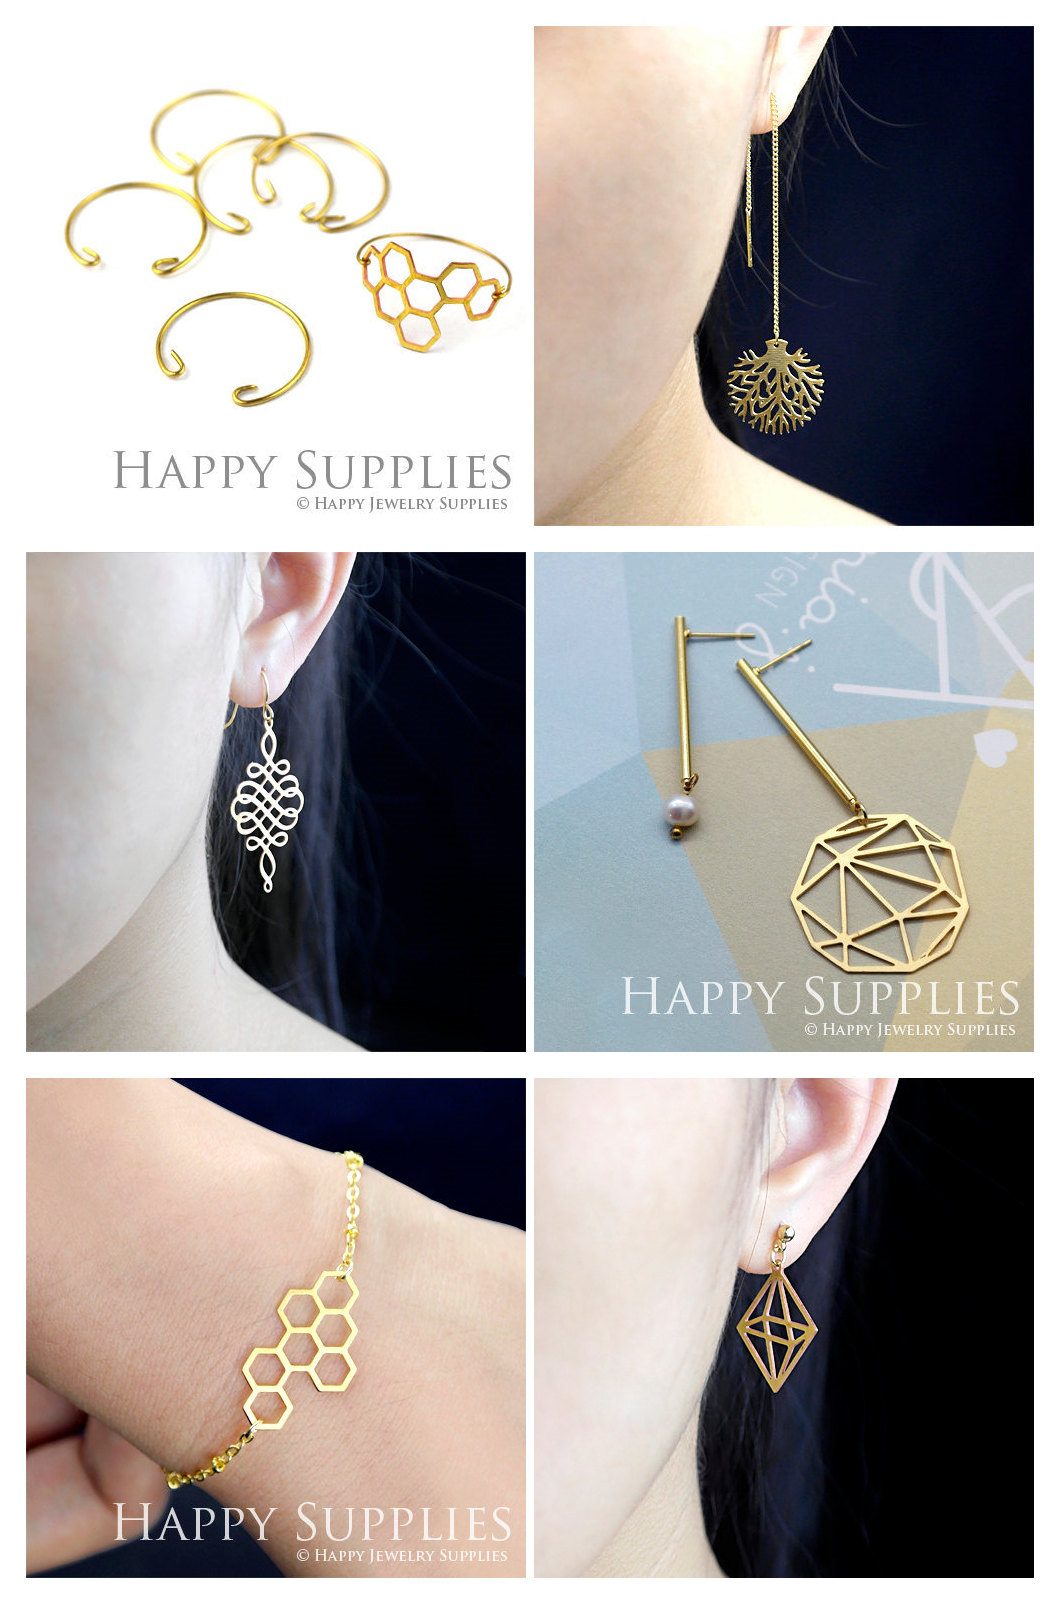 Personalized Laser Cut Brass Jewelry Findings for jewelry making supplies - Happy Jewelry Supplies